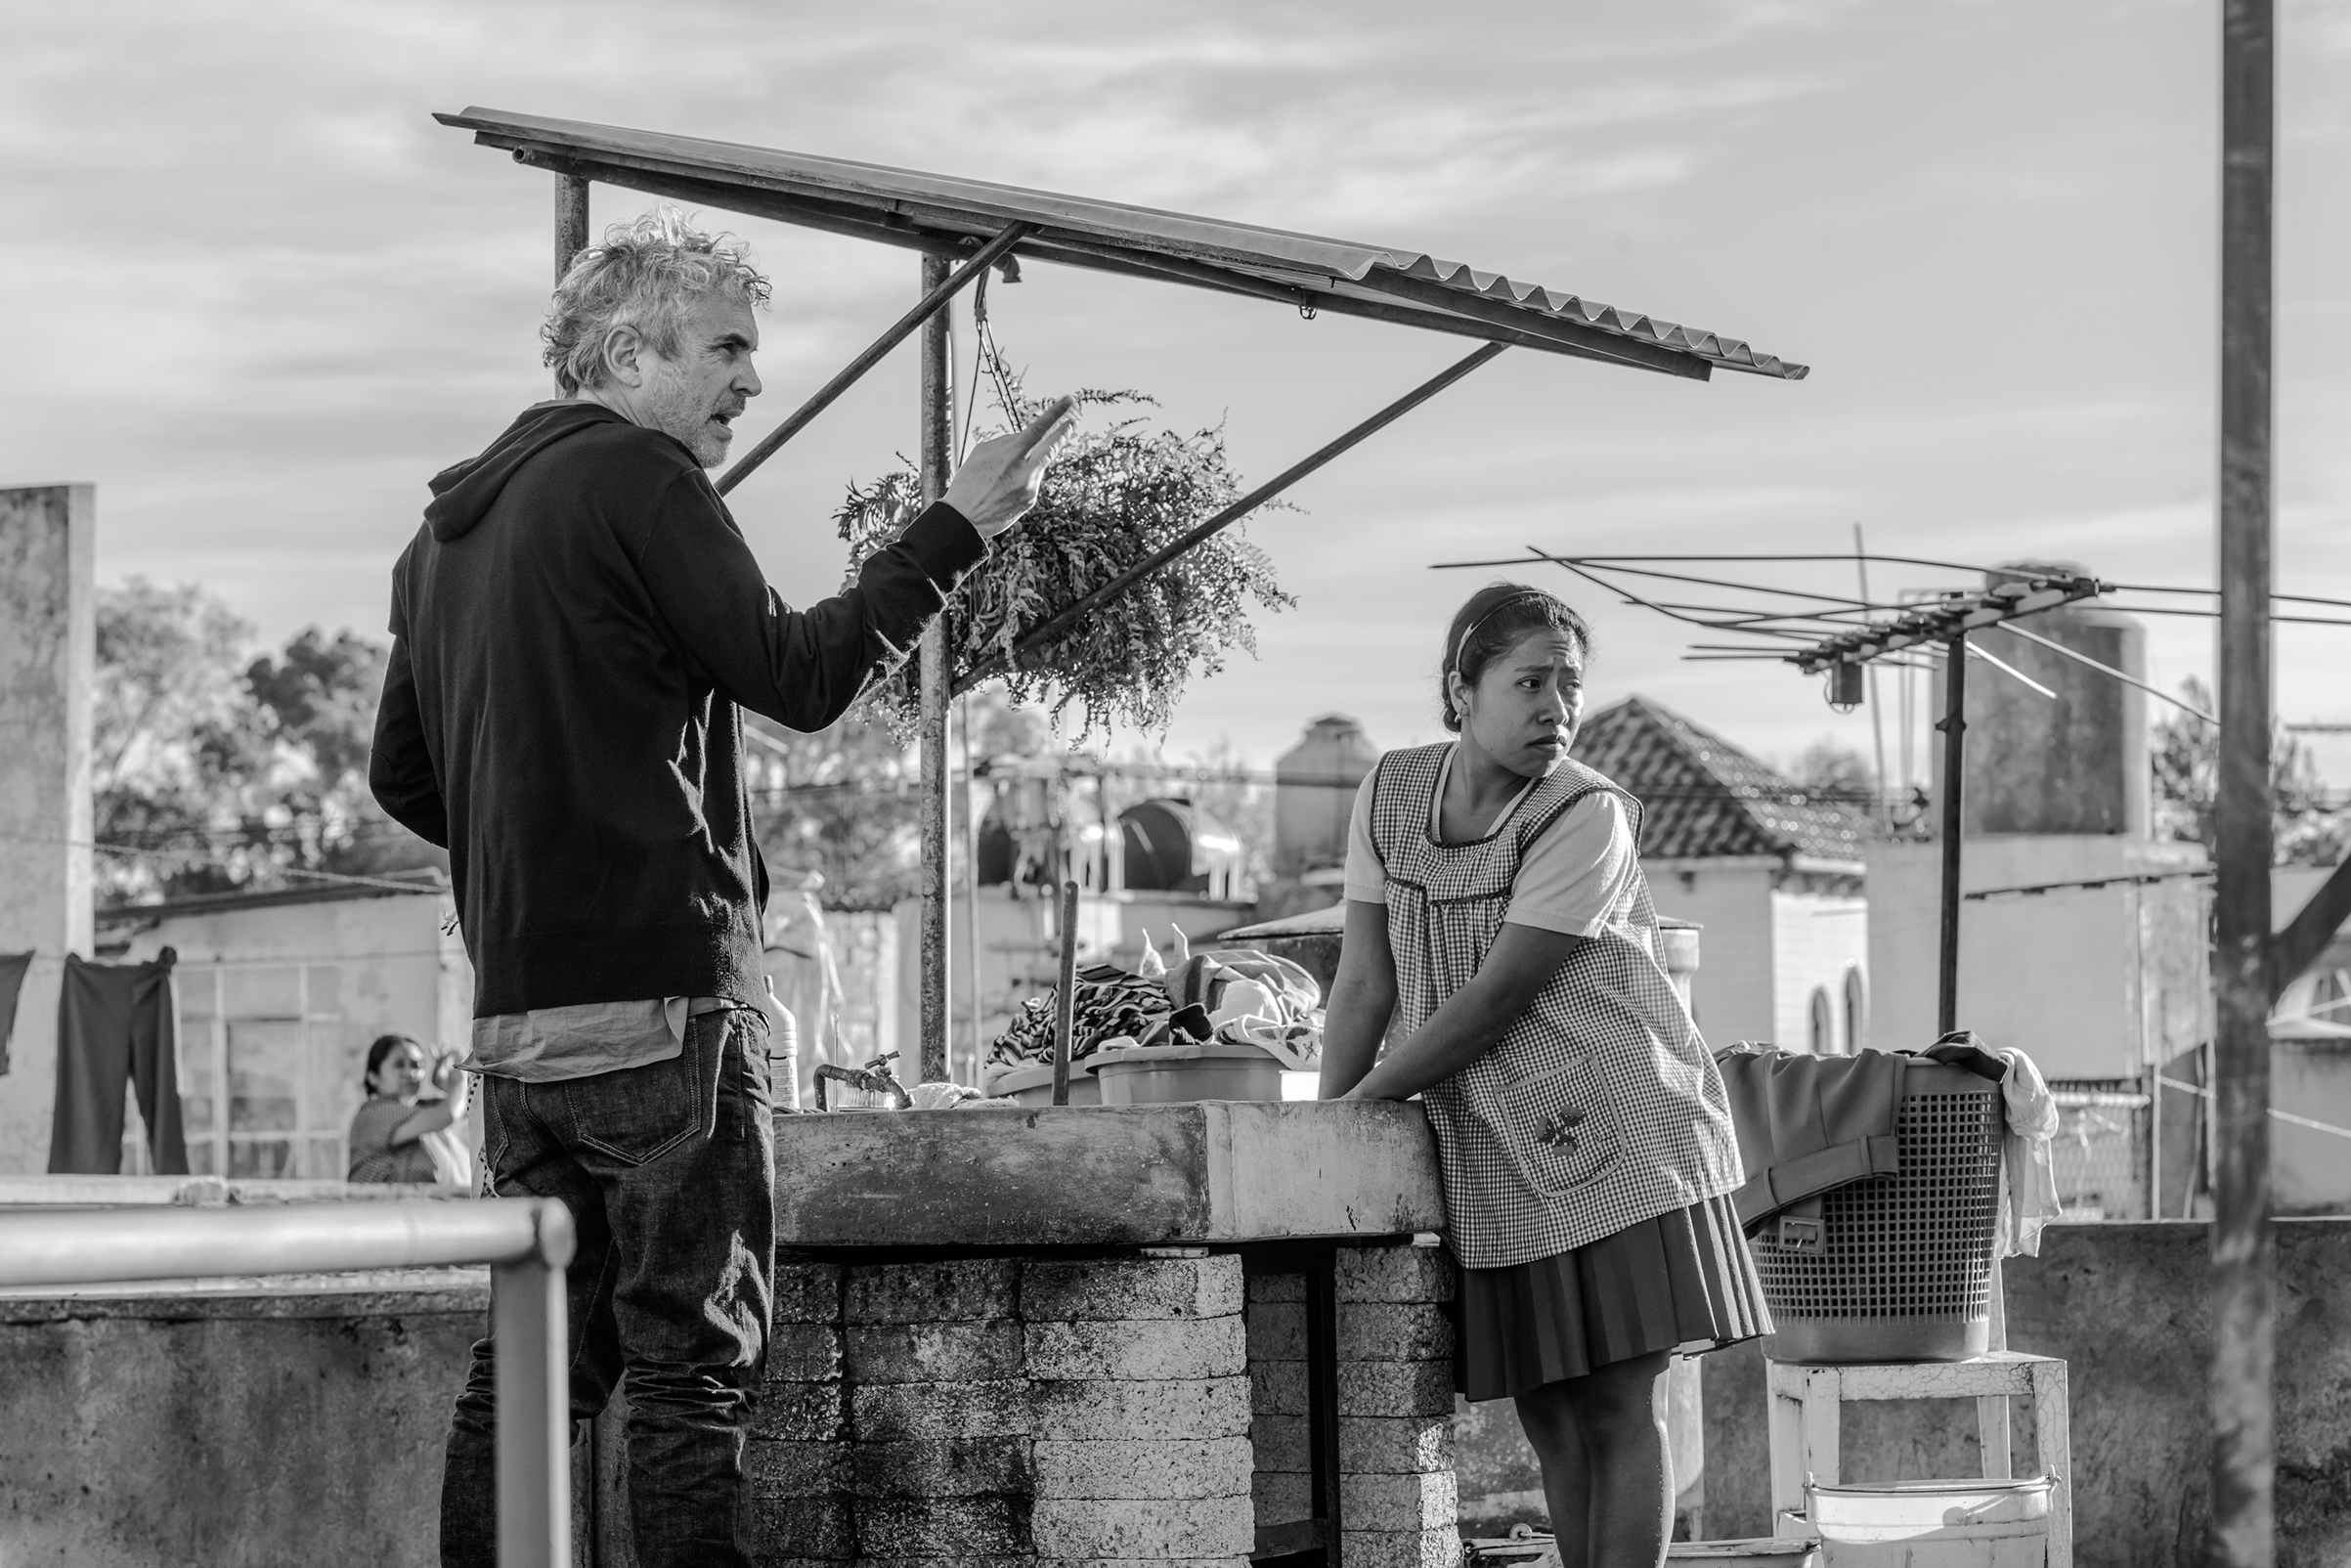 Behind the scenes of ROMA by director Alfonso Cuarón.